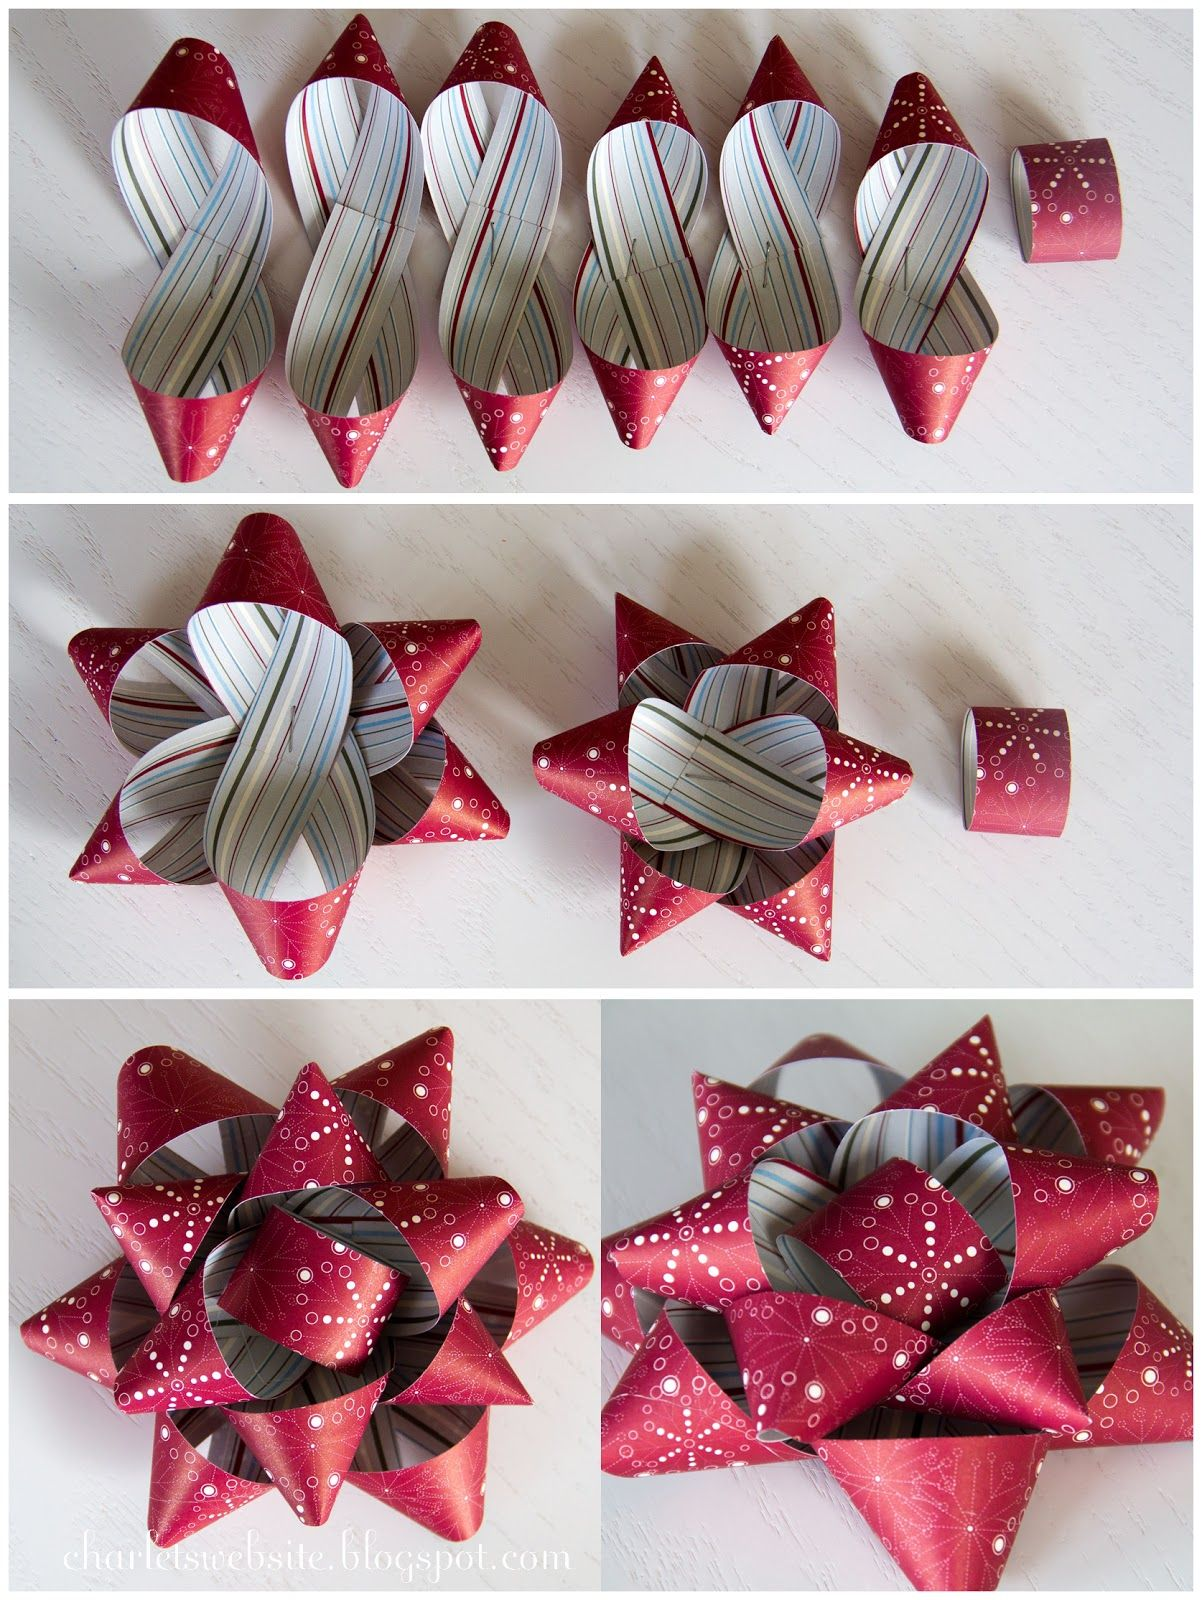 20 Gift Wrap Bows Christmas Metallic Wrapping Xmas Bow Decoration